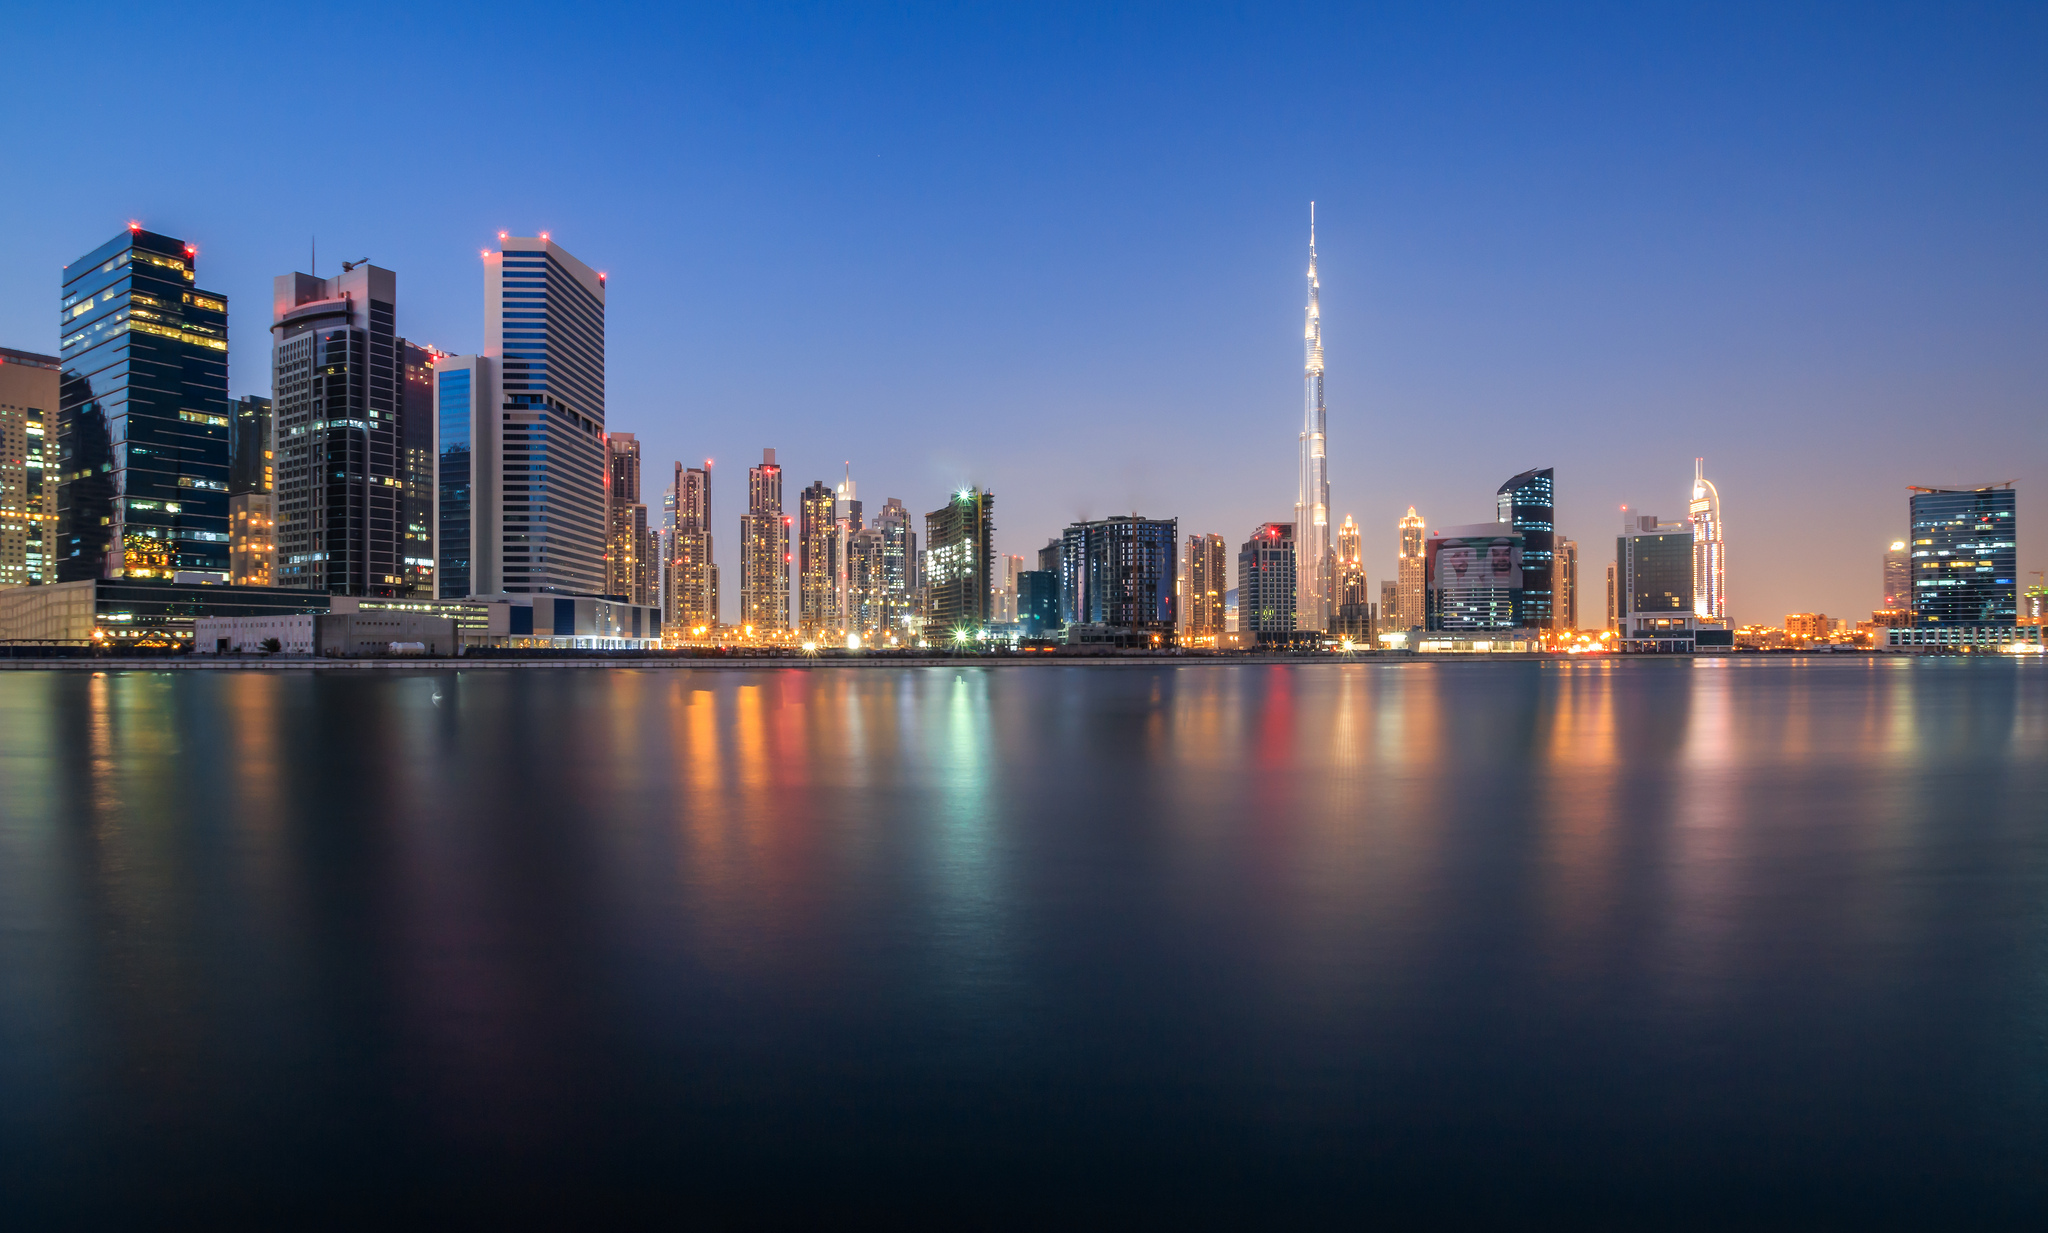 Wallpaper of Dubai [2048 x 1233] c4staticflickrcom 2048x1233